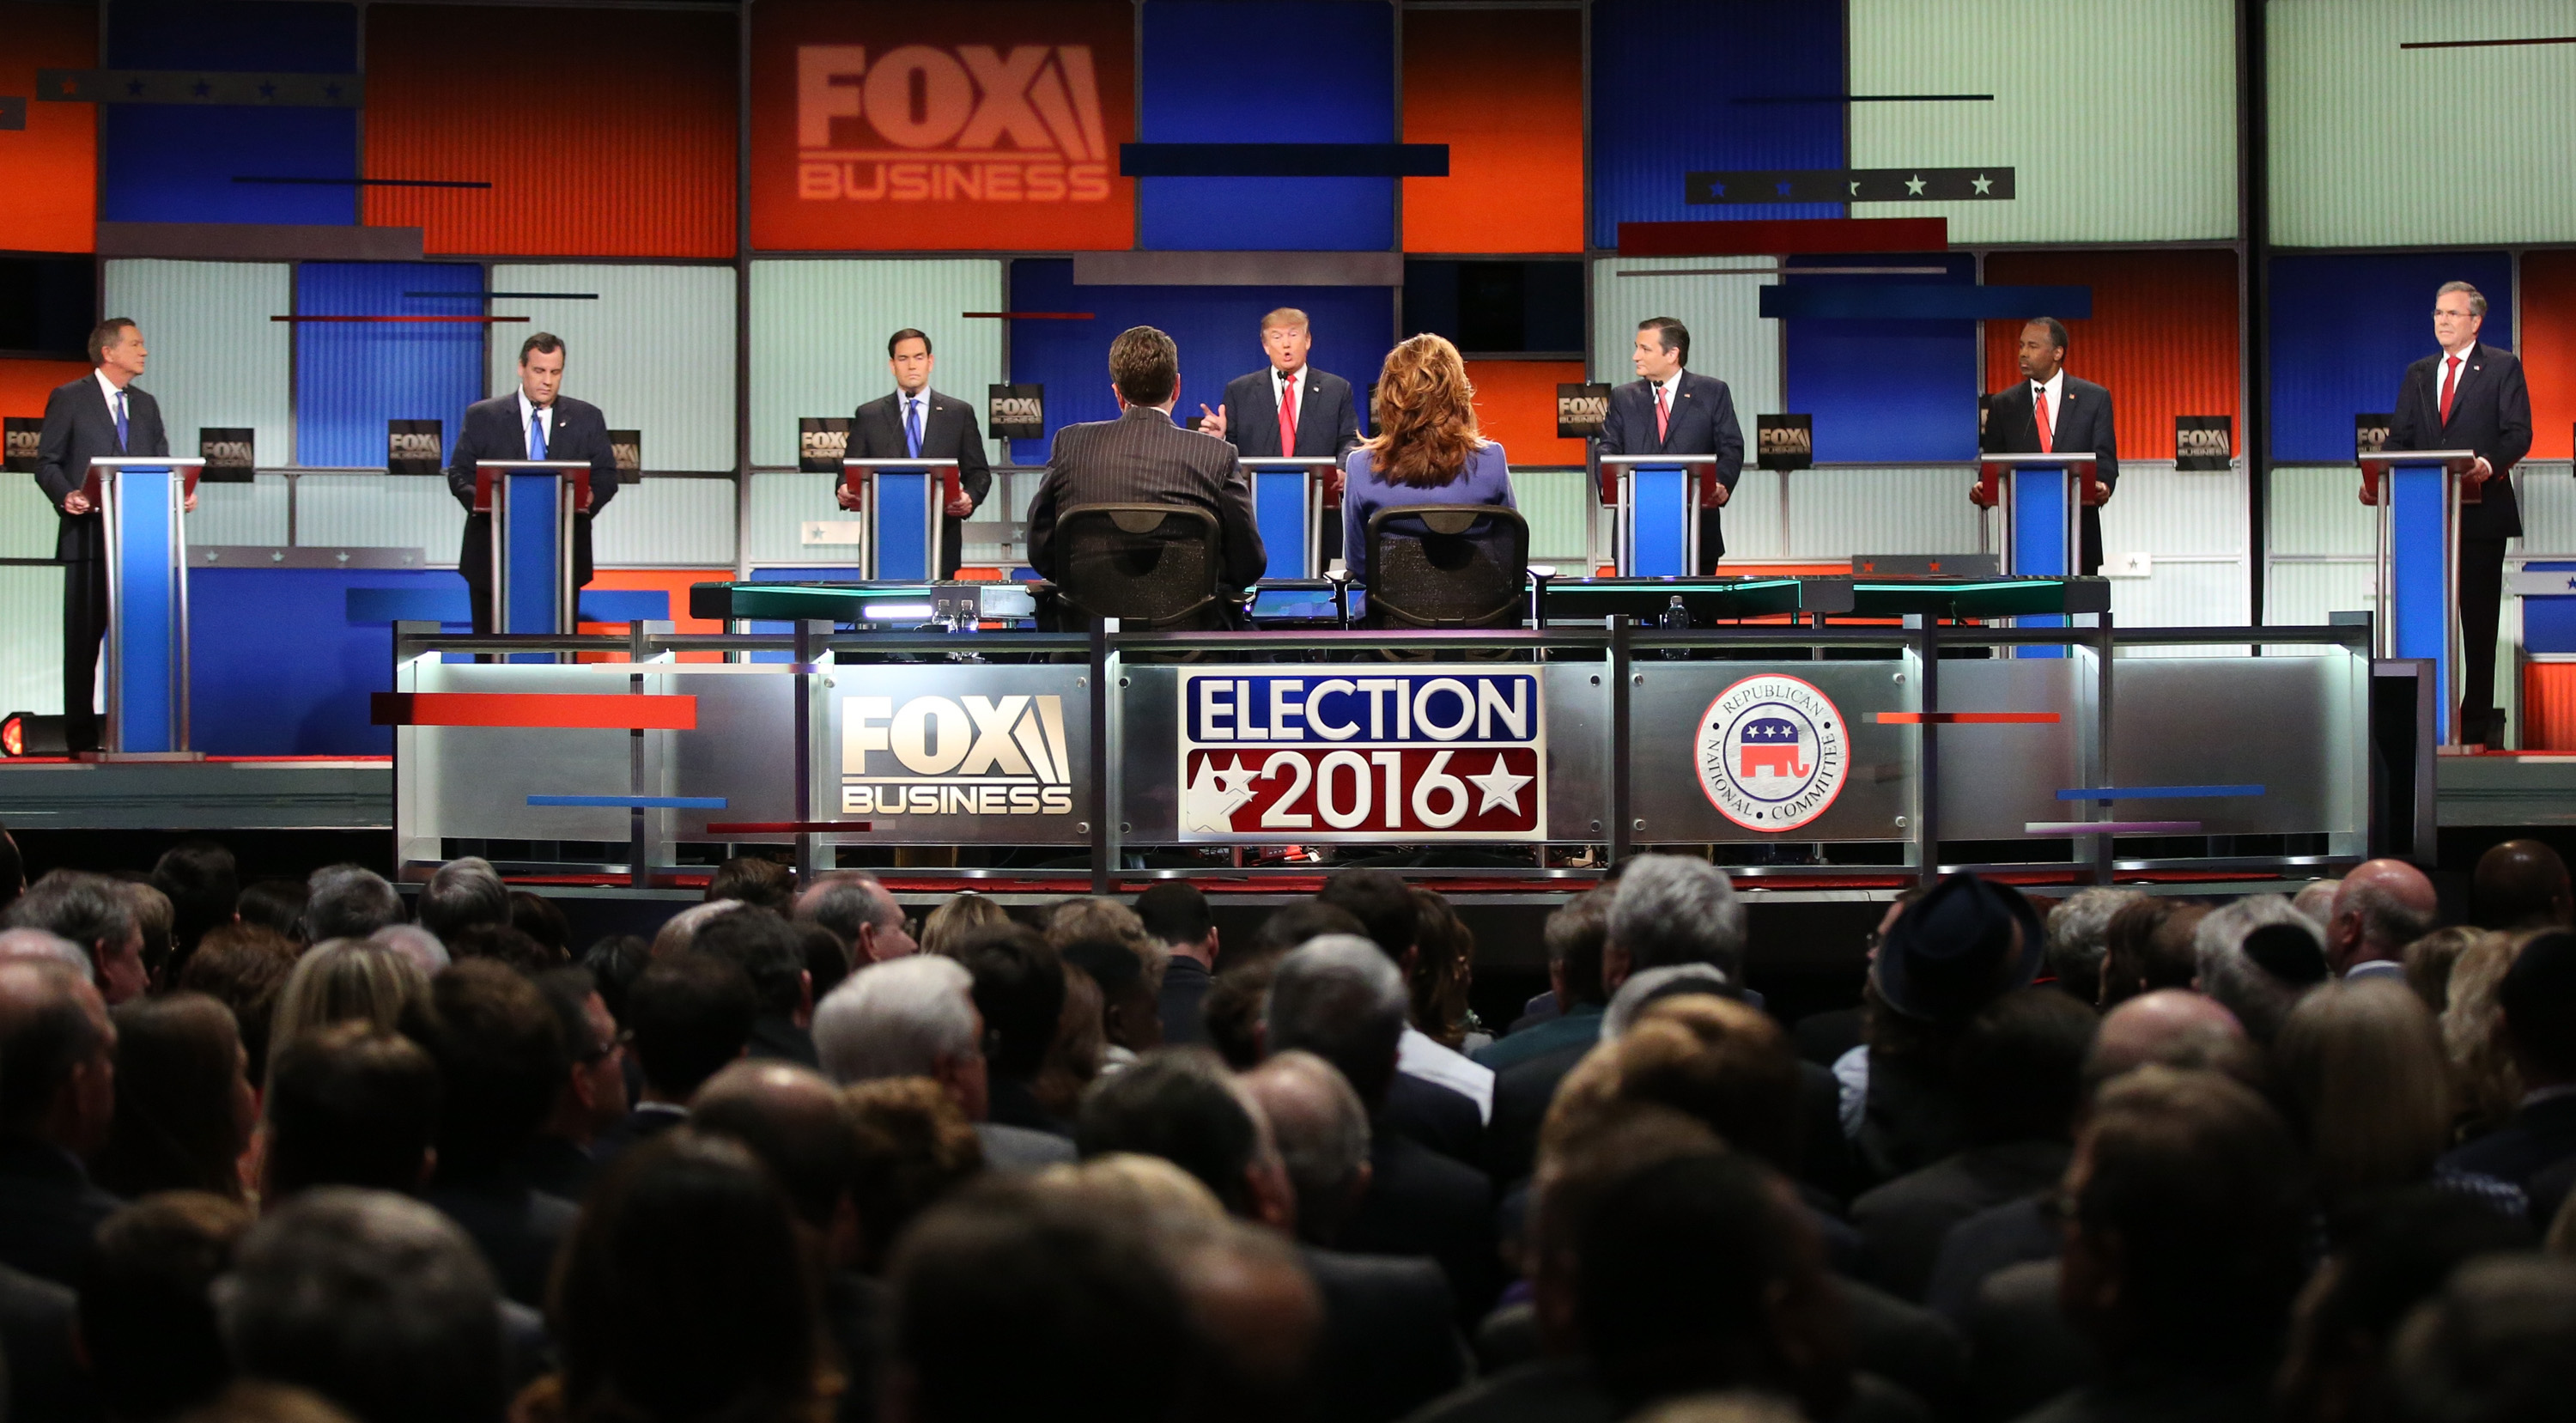 Republican presidential candidates (L-R) Ohio Governor John Kasich, New Jersey Governor Chris Christie, Sen. Marco Rubio (R-FL), Donald Trump, Sen. Ted Cruz (R-TX), Ben Carson and Jeb Bush participate in the Fox Business Network Republican presidential debate at the North Charleston Coliseum and Performing Arts Center on January 14, 2016 in North Charleston, South Carolina. The sixth Republican debate is held in two parts, one main debate for the top seven candidates, and another for three other candidates lower in the current polls.